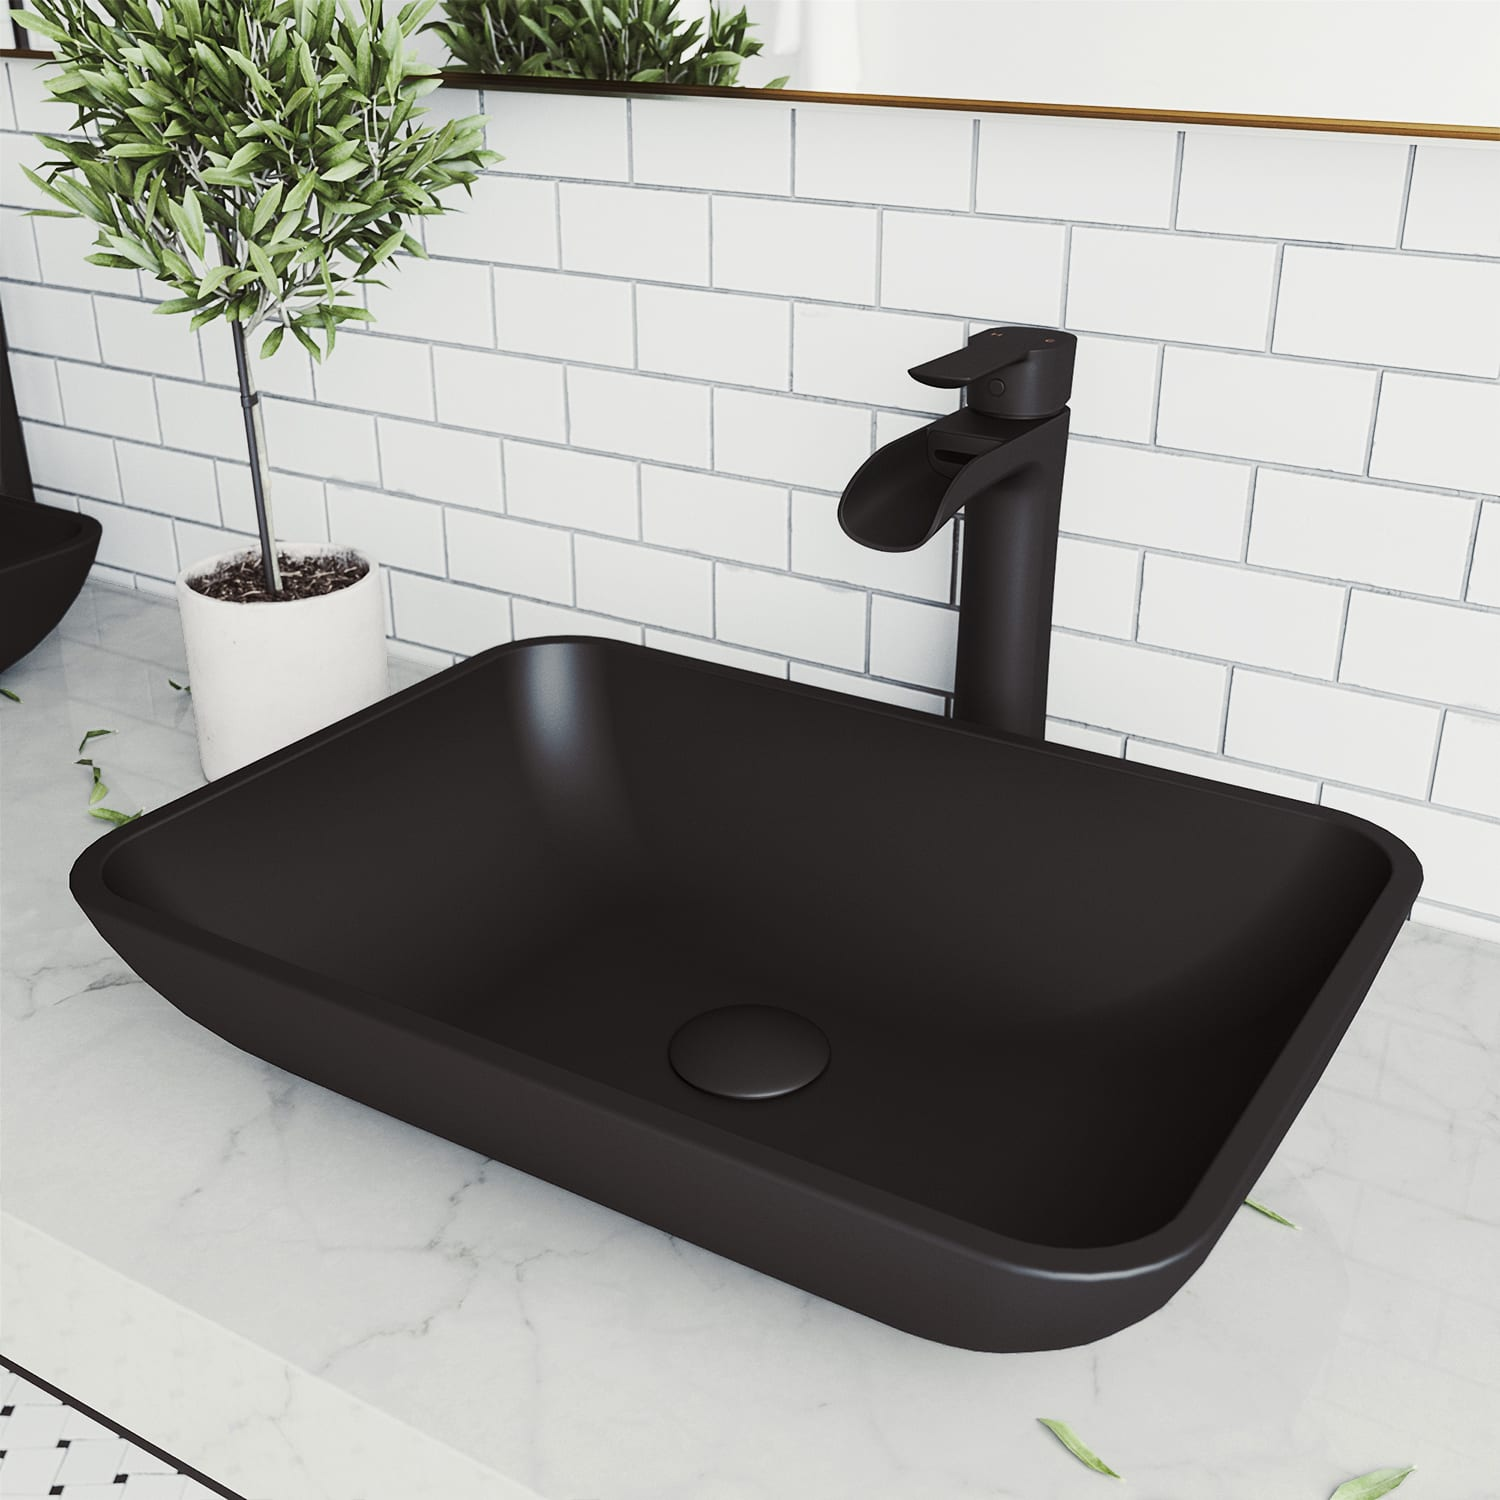 Vigo Vgt1434 Matte Black Sottile 18 Vessel Bathroom Sink With 1 2 Gpm Deck Mounted Bathroom Faucet And Pop Up Drain Assembly Faucetdirect Com